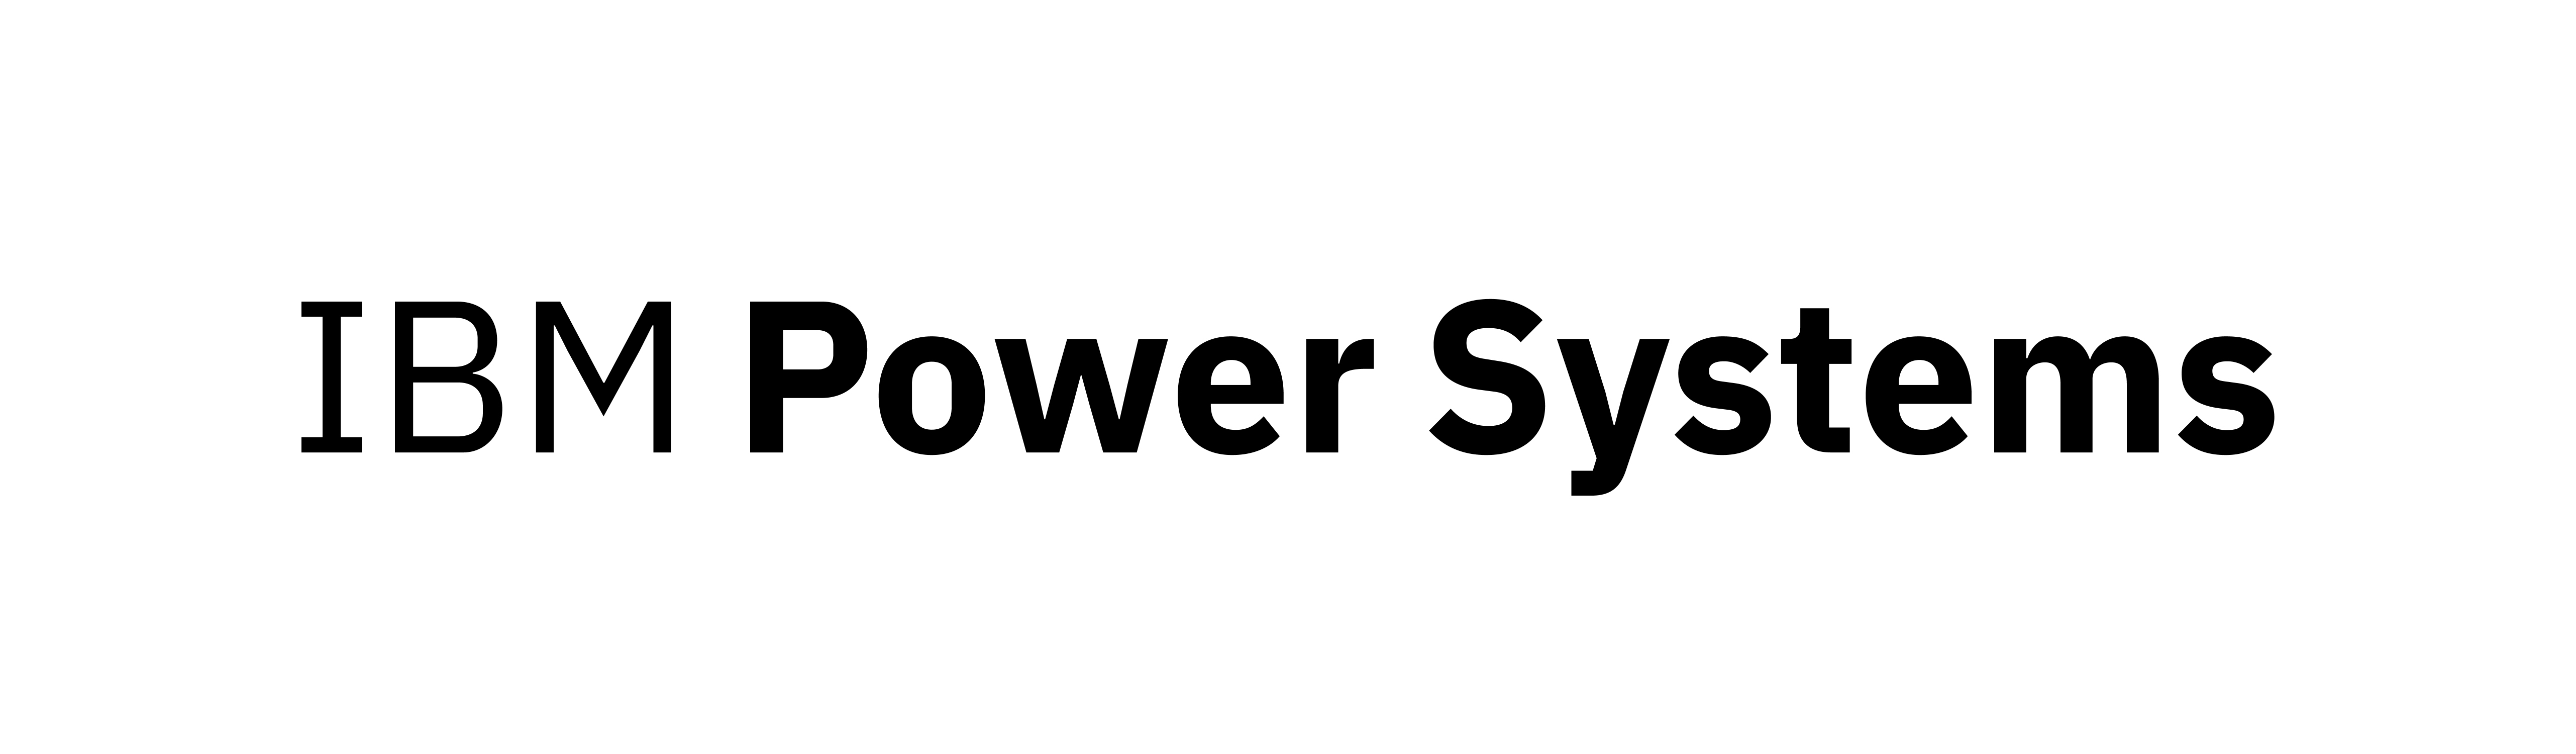 IBM Power Systems logo used with permission from IBM Corporation